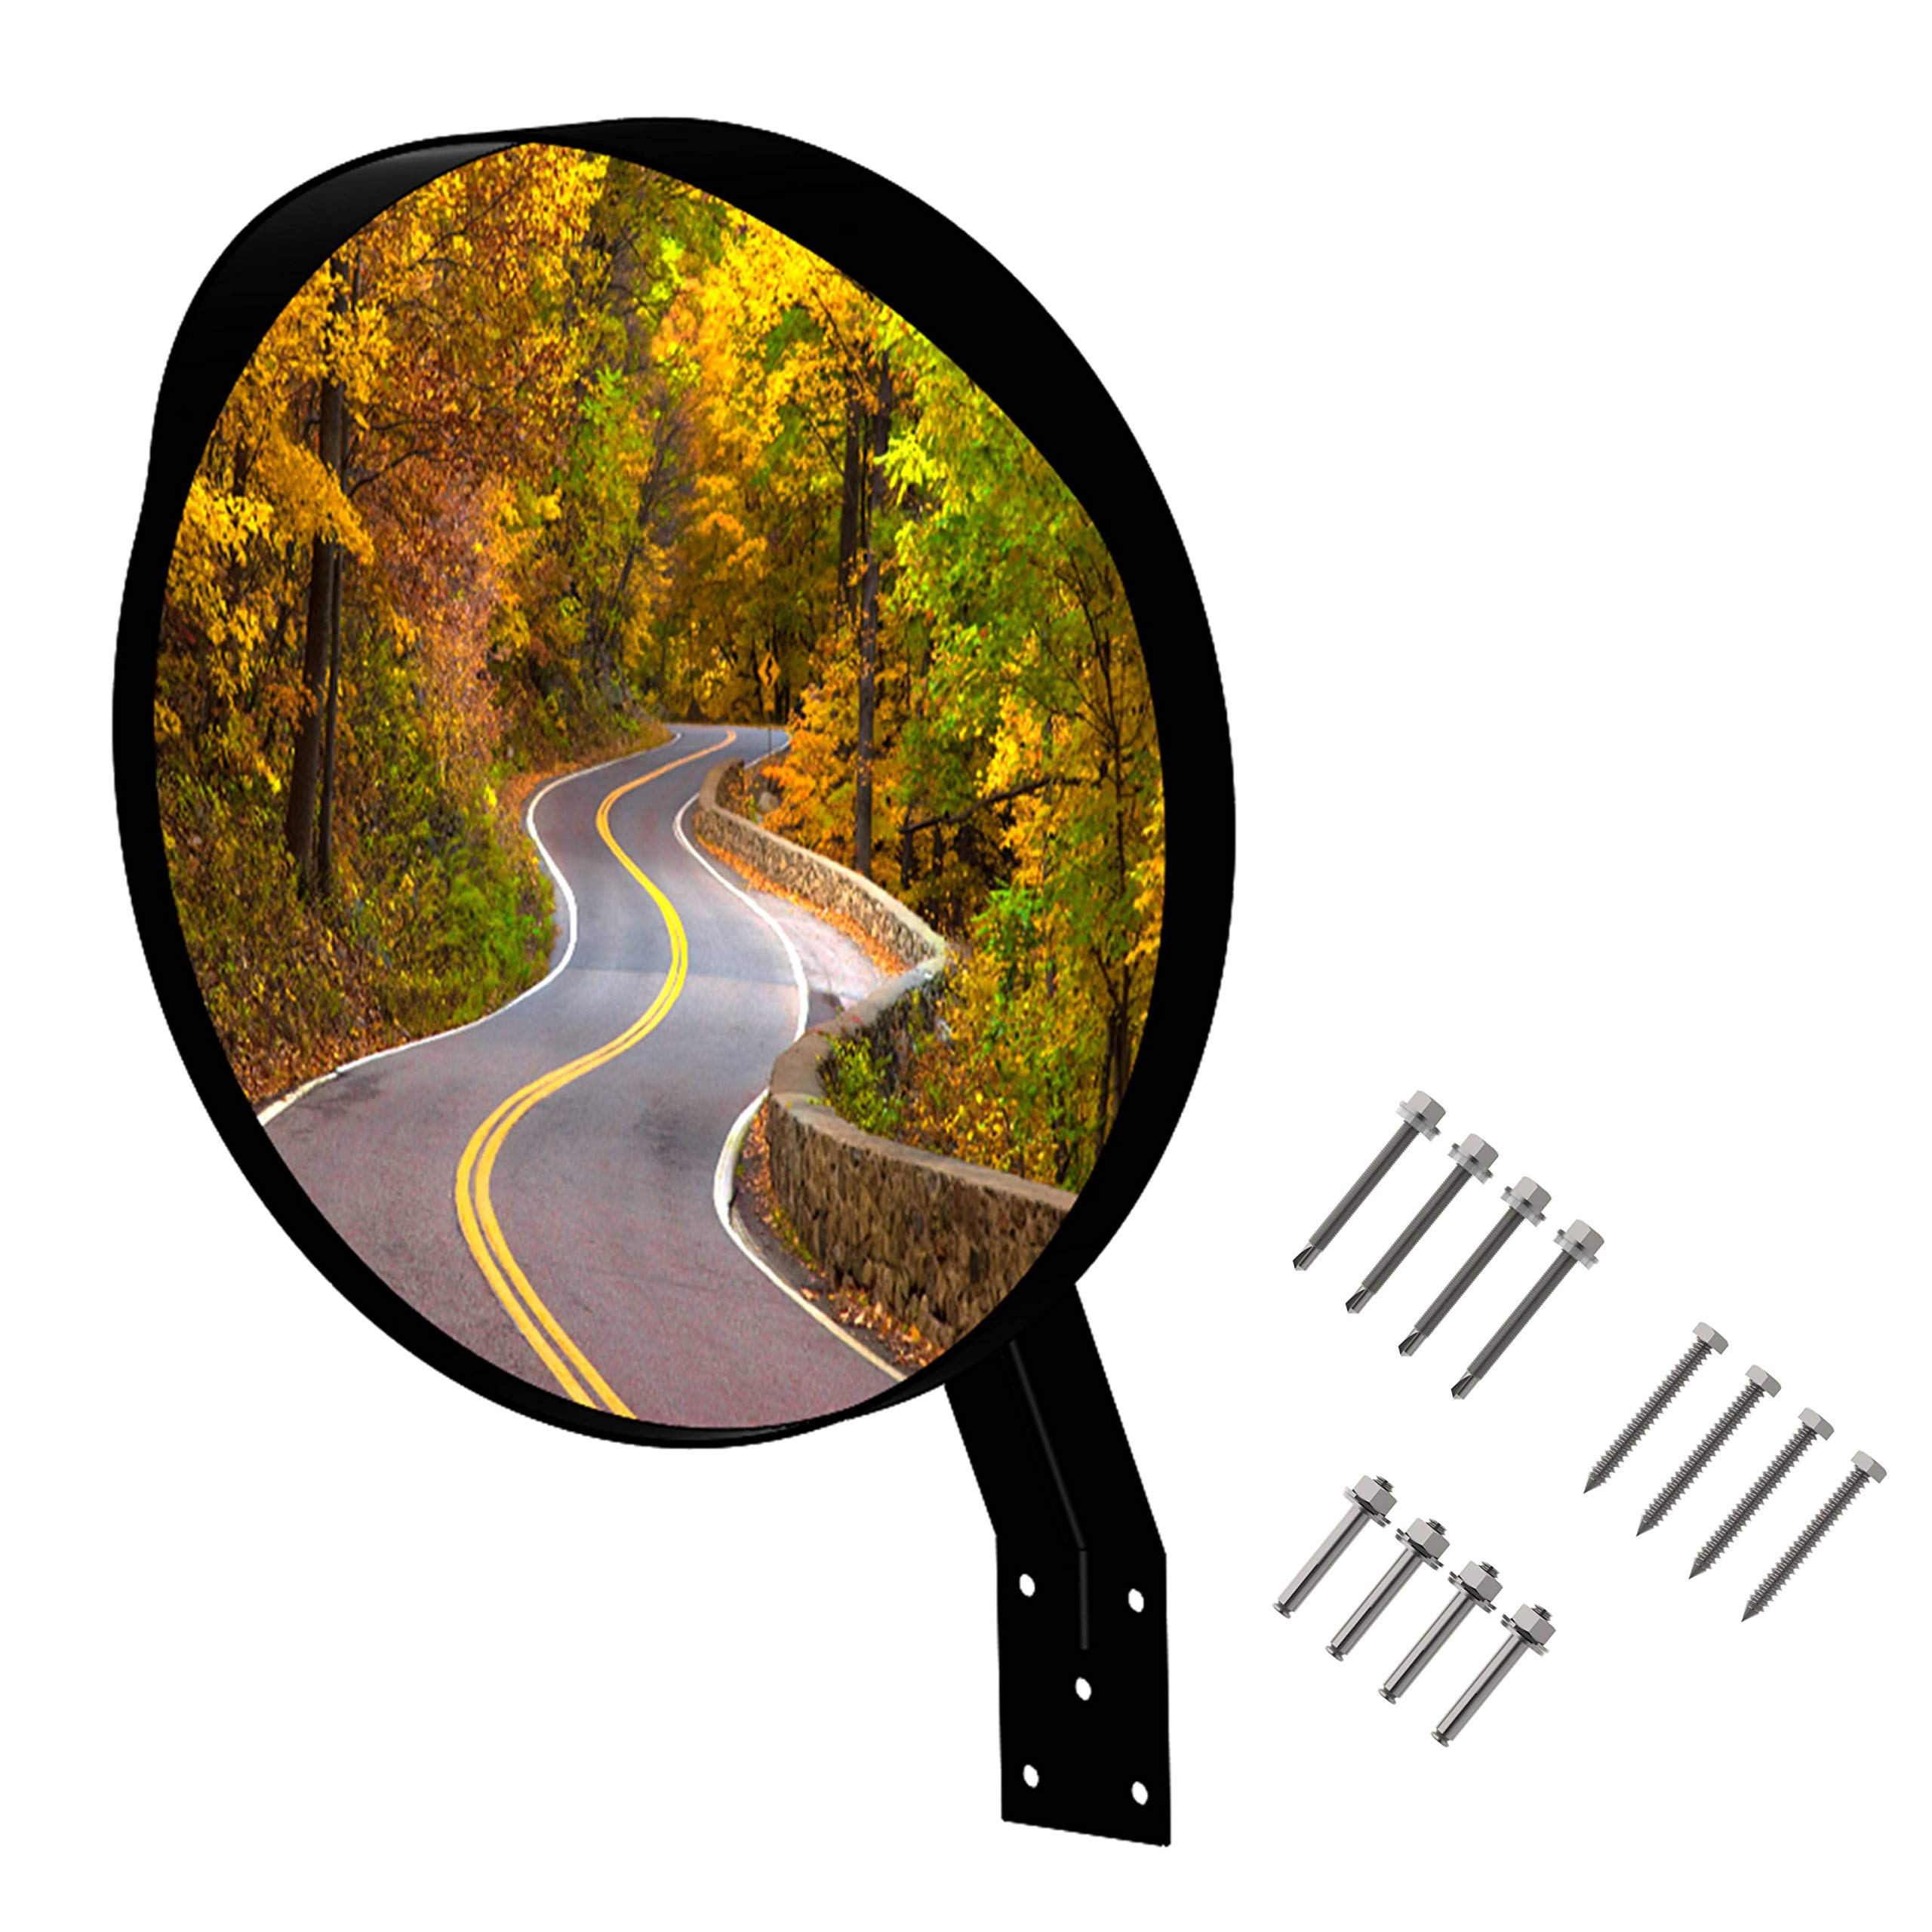 16 inch Convex Mirror, Wide Angle View, Premium Quality, Curved Security Mirror for Many uses. Bonus! Contains 3 Sets of Screws to Mount on Any Surface!